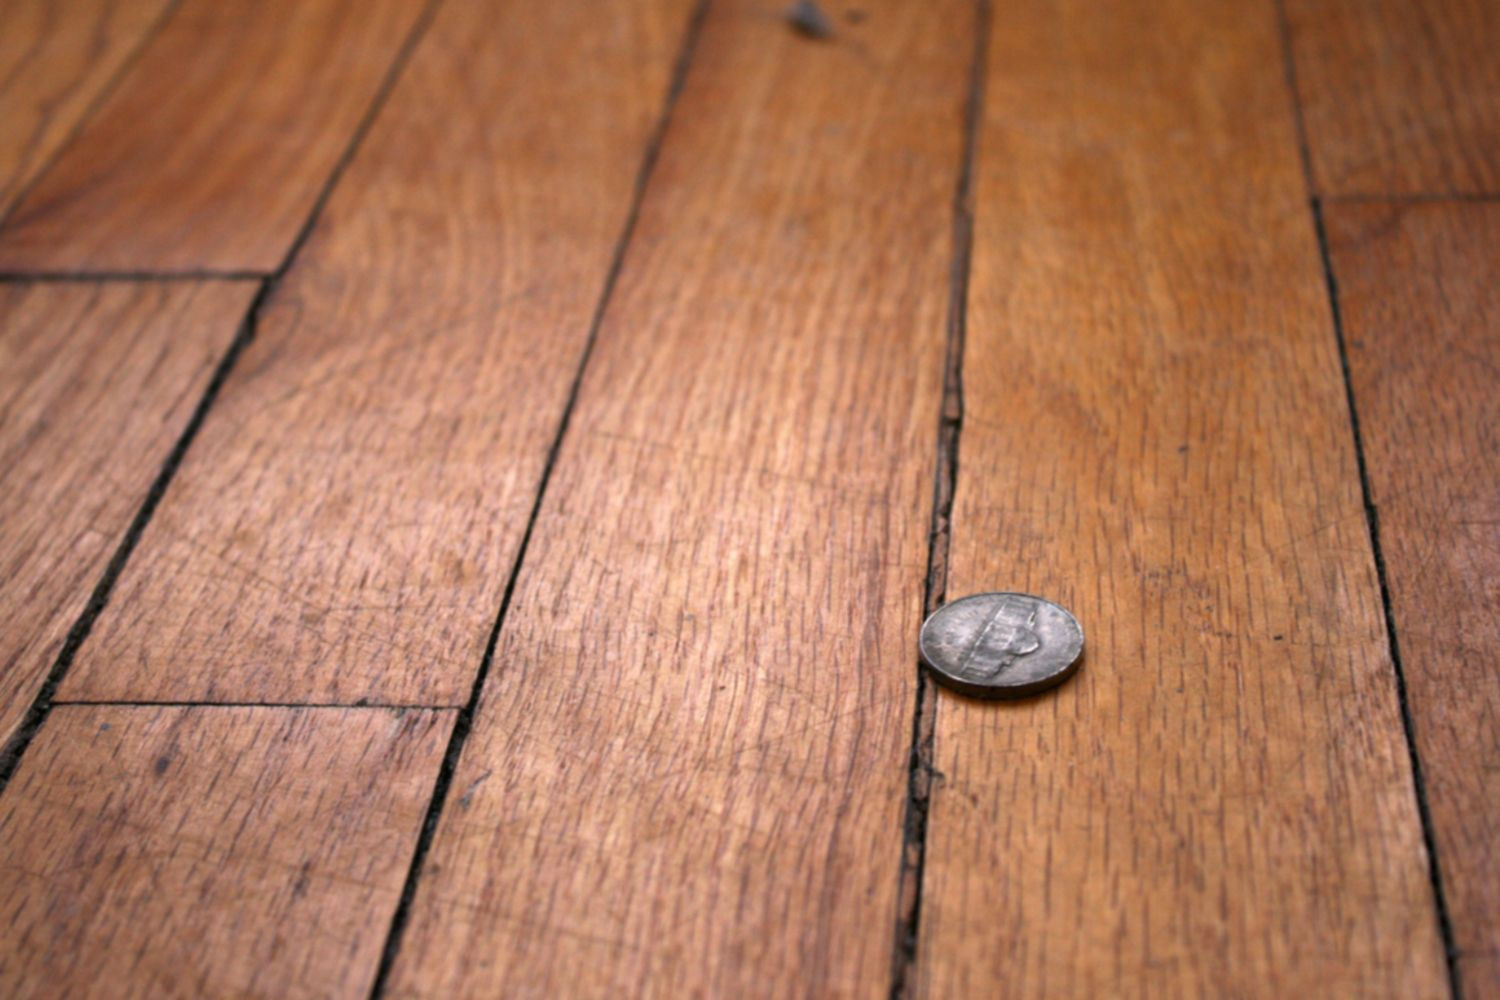 how to fix loose hardwood floor boards of how to repair gaps between floorboards with wood floor with gaps between boards 1500 x 1000 56a49eb25f9b58b7d0d7df8d